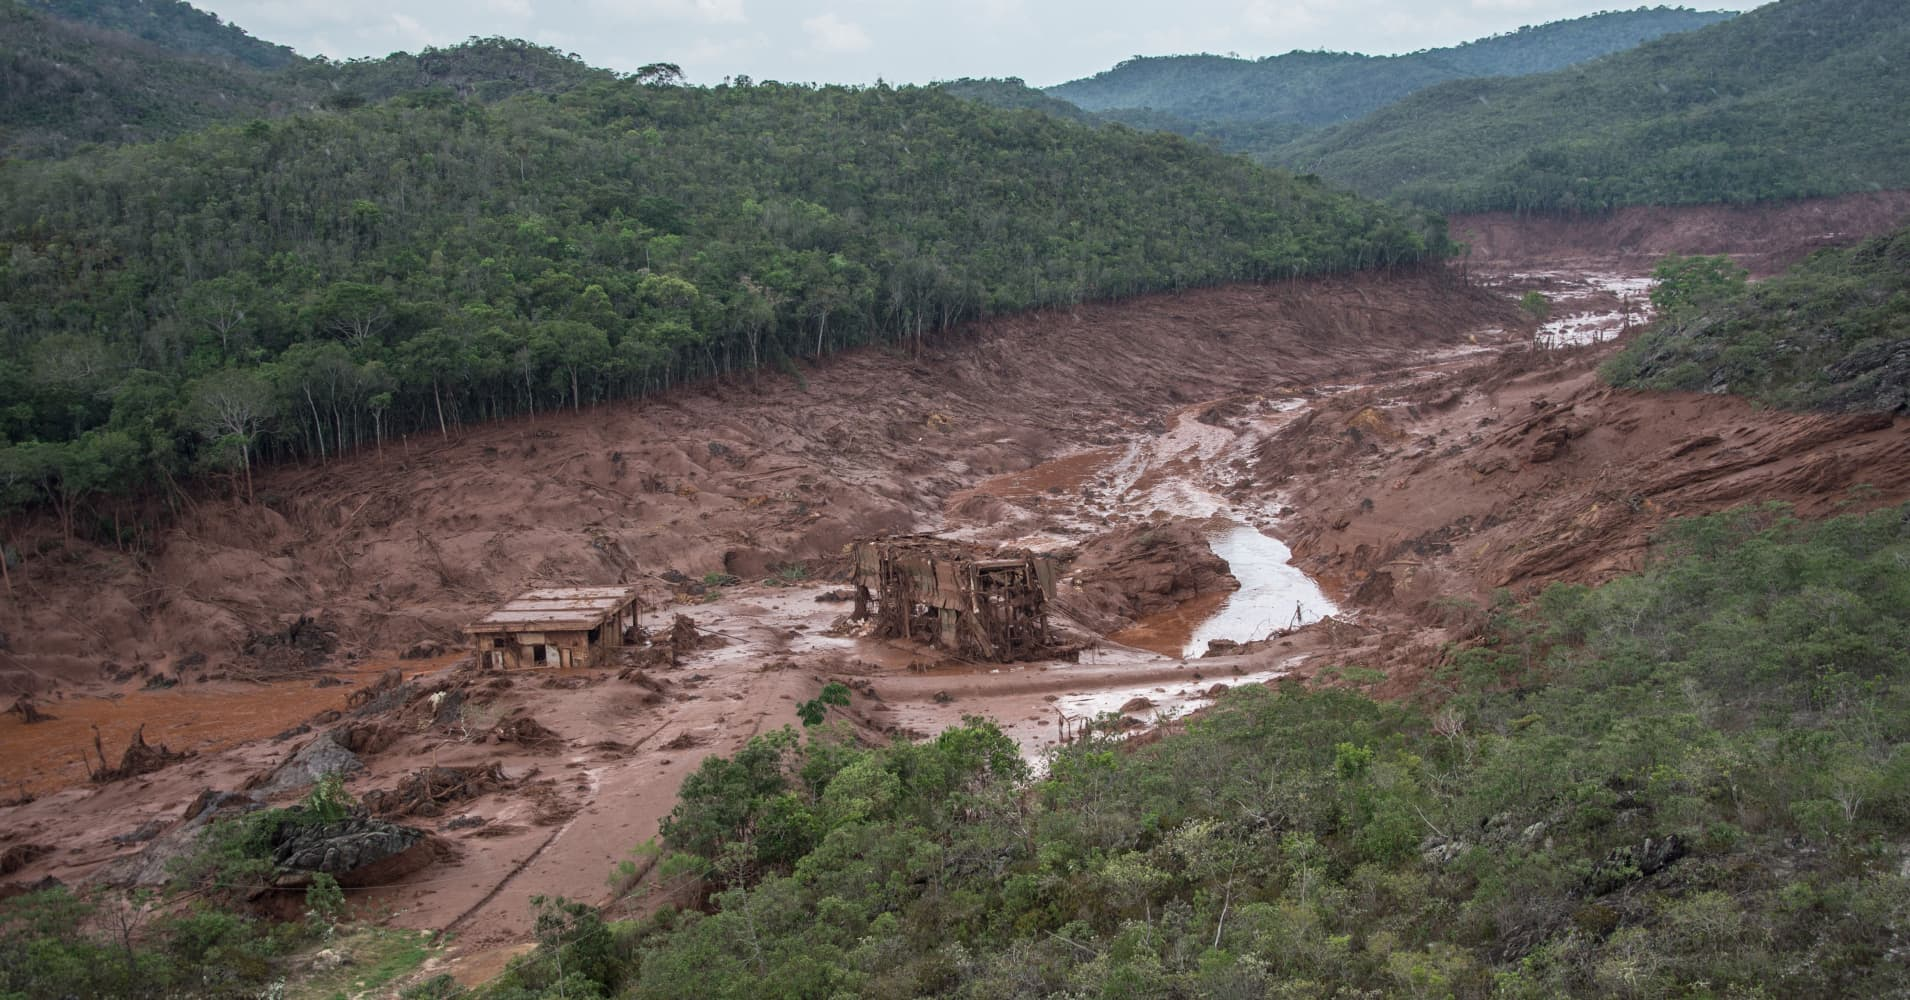 bhp to review iron ore production guidance after samarco mudslide flood. Black Bedroom Furniture Sets. Home Design Ideas